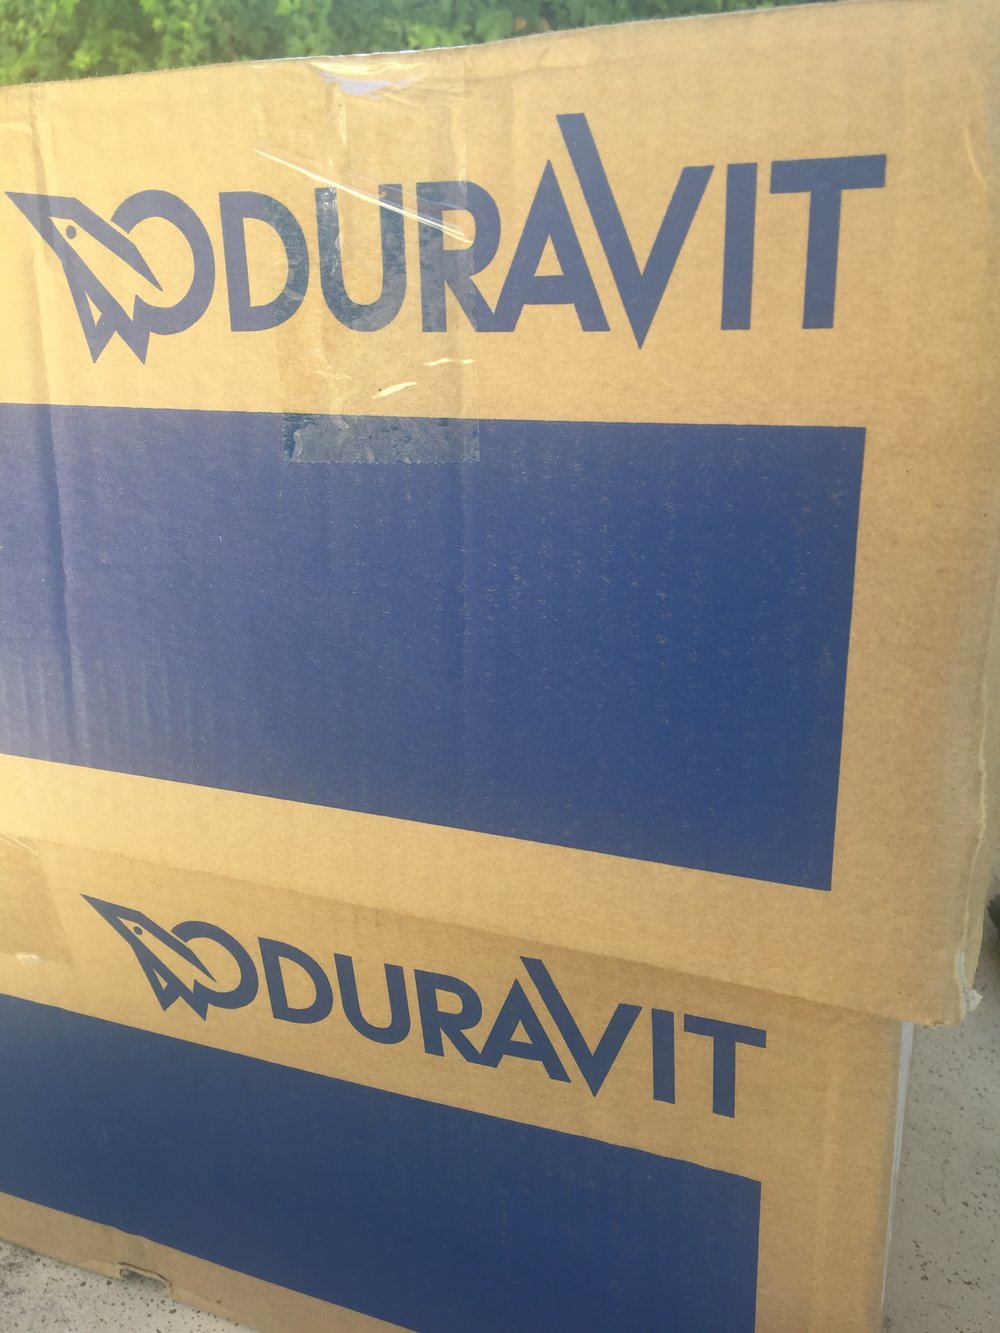 Duravit basins arriving on site!